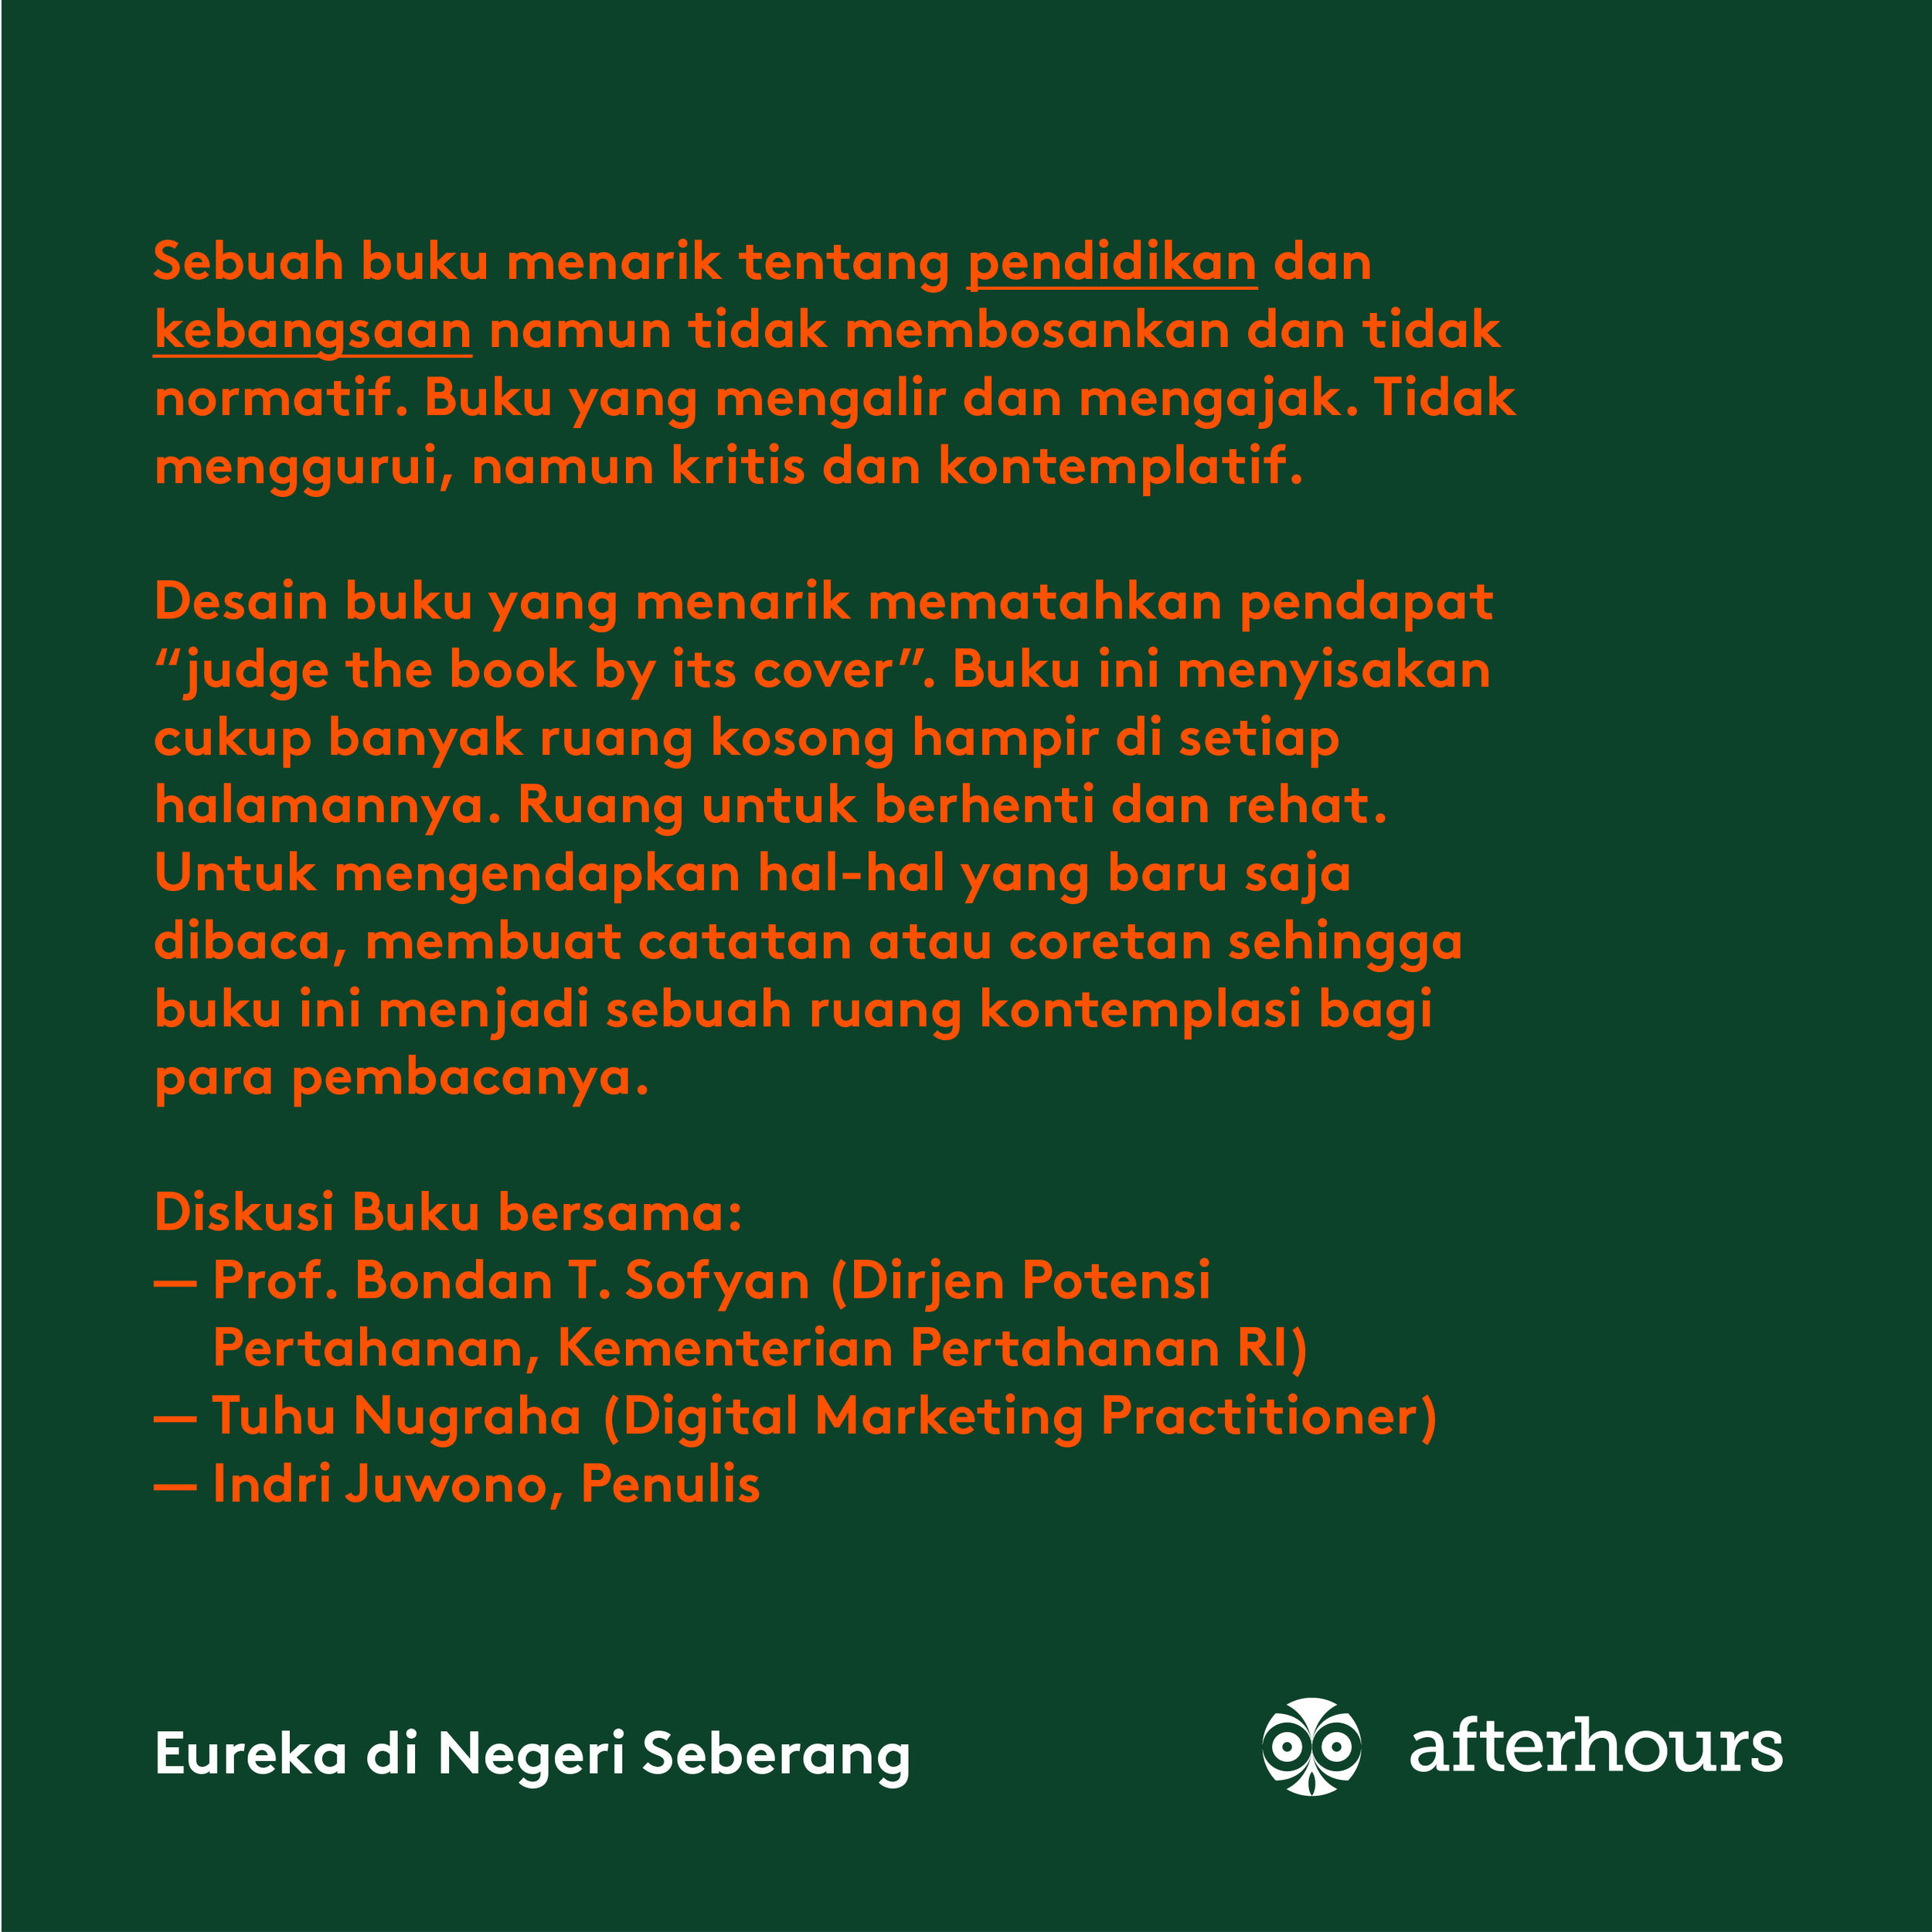 EUREKA Book Launch Ad3.jpg